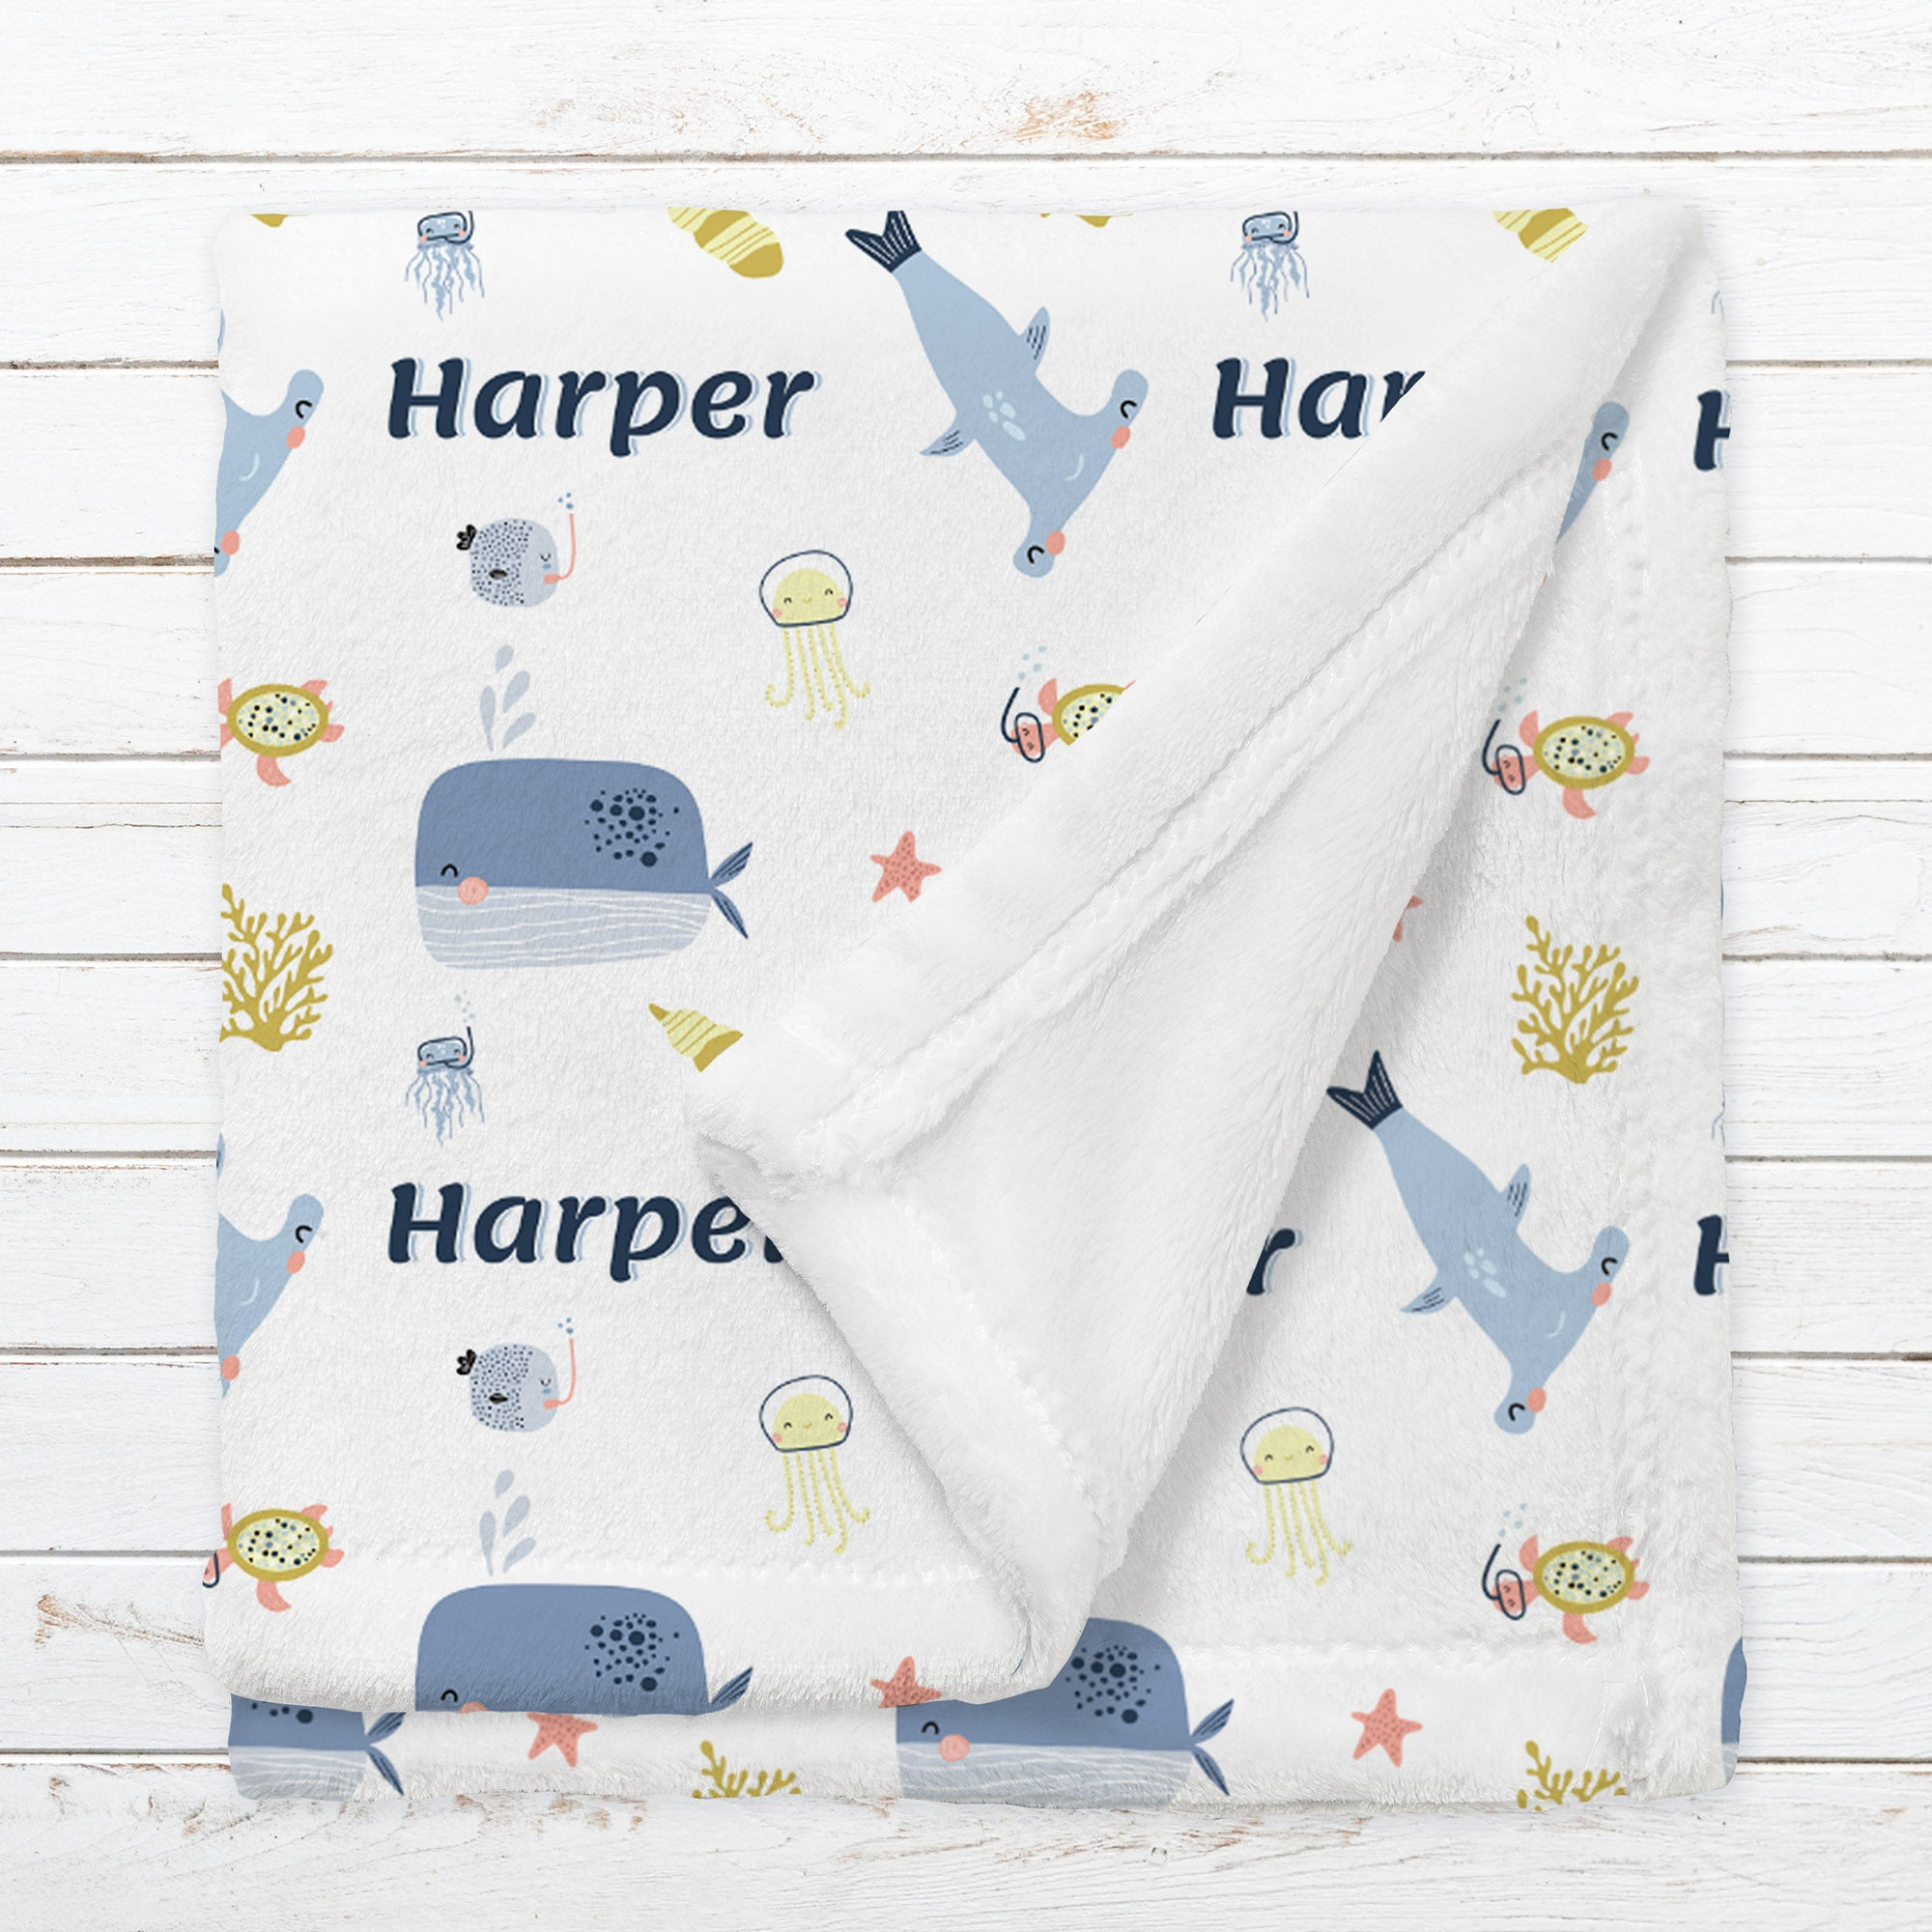 Personalized Sea Blanket for Babies, Toddlers and Kids - Let's Shell-ebrate